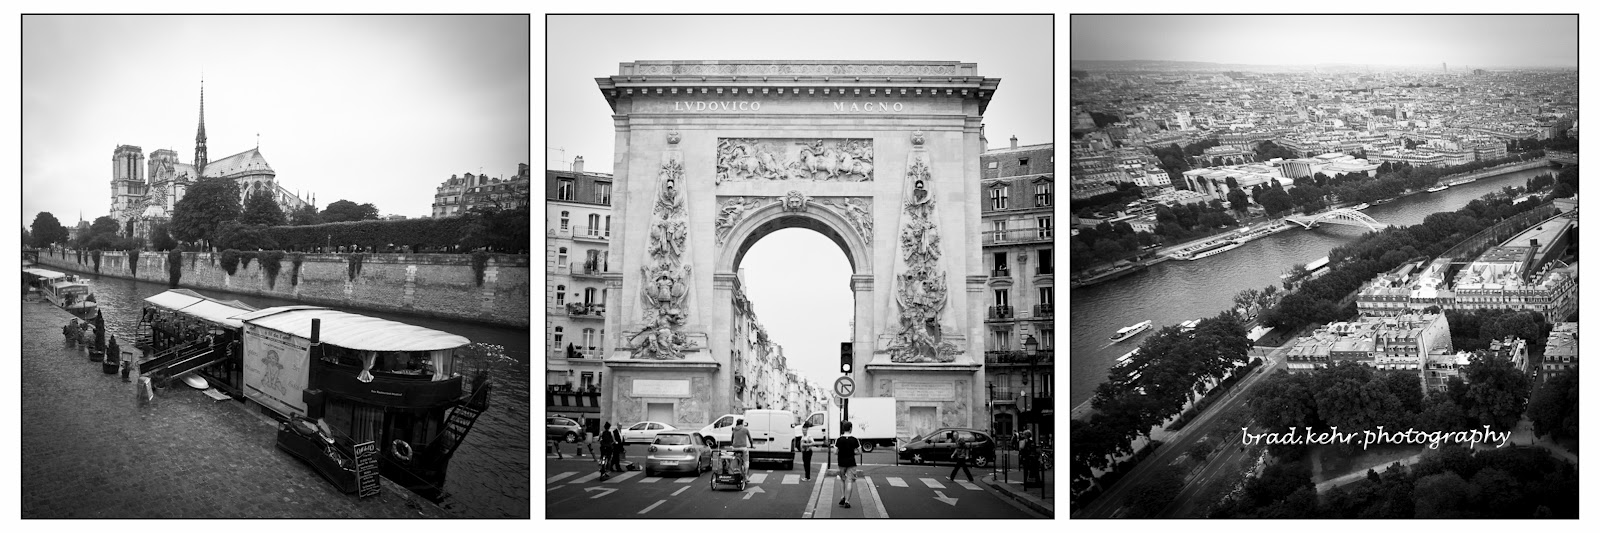 how to create an instagram photo essay brad kehr photography paris